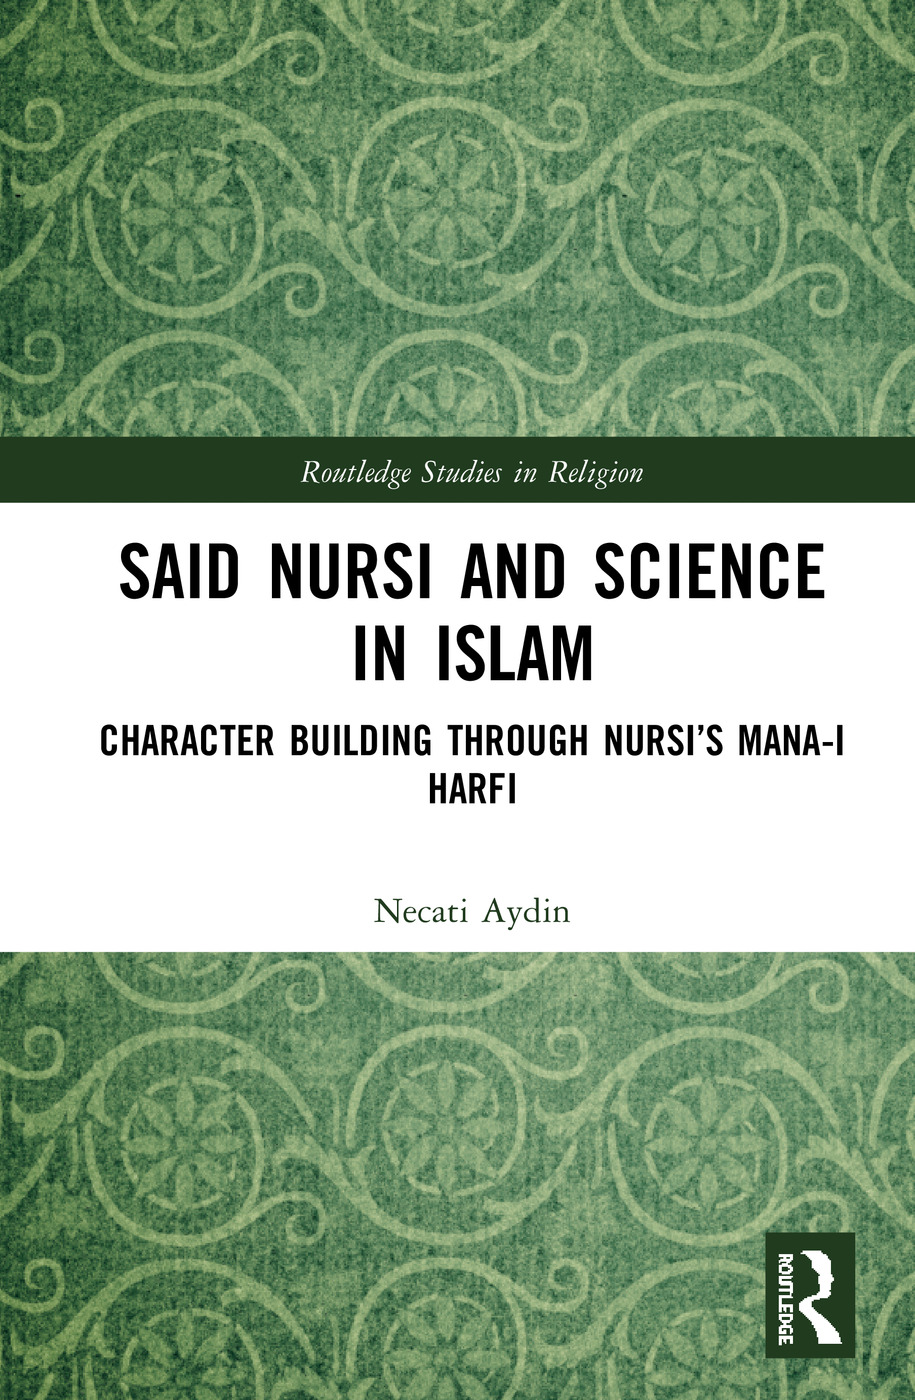 Said Nursi and Science in Islam: Character Building through Nursi's Mana-i harfi book cover